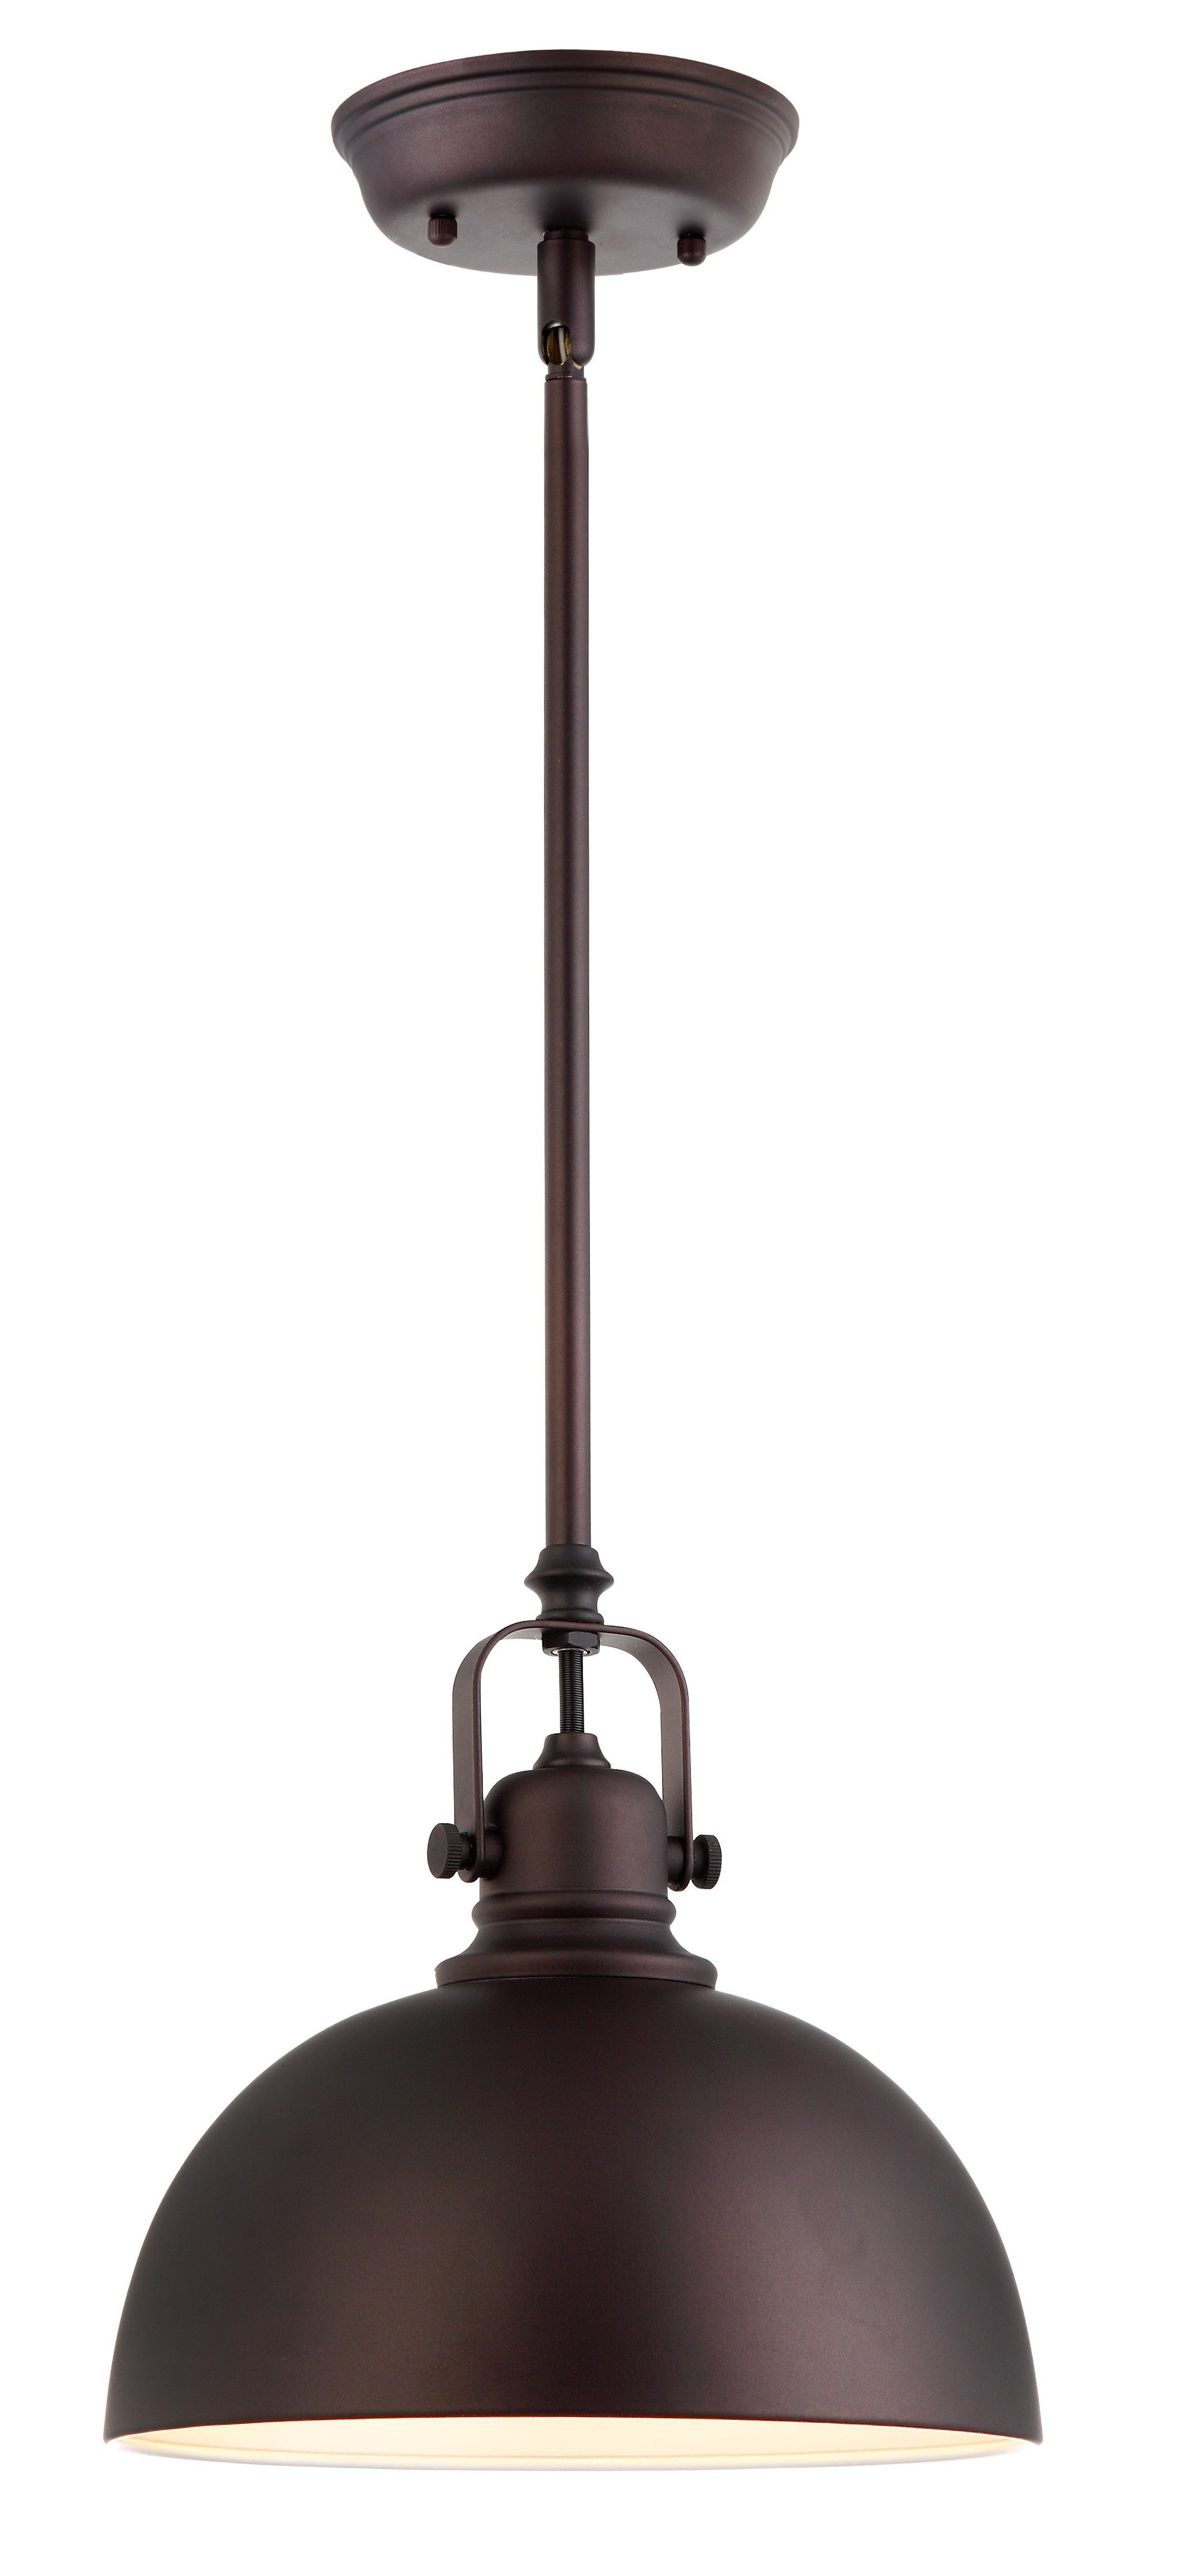 Canarm Ipl222B01Orb Polo 1 Light Mini Pendant With Oil Within Well Known Monadnock 1 Light Single Dome Pendants (Gallery 18 of 20)